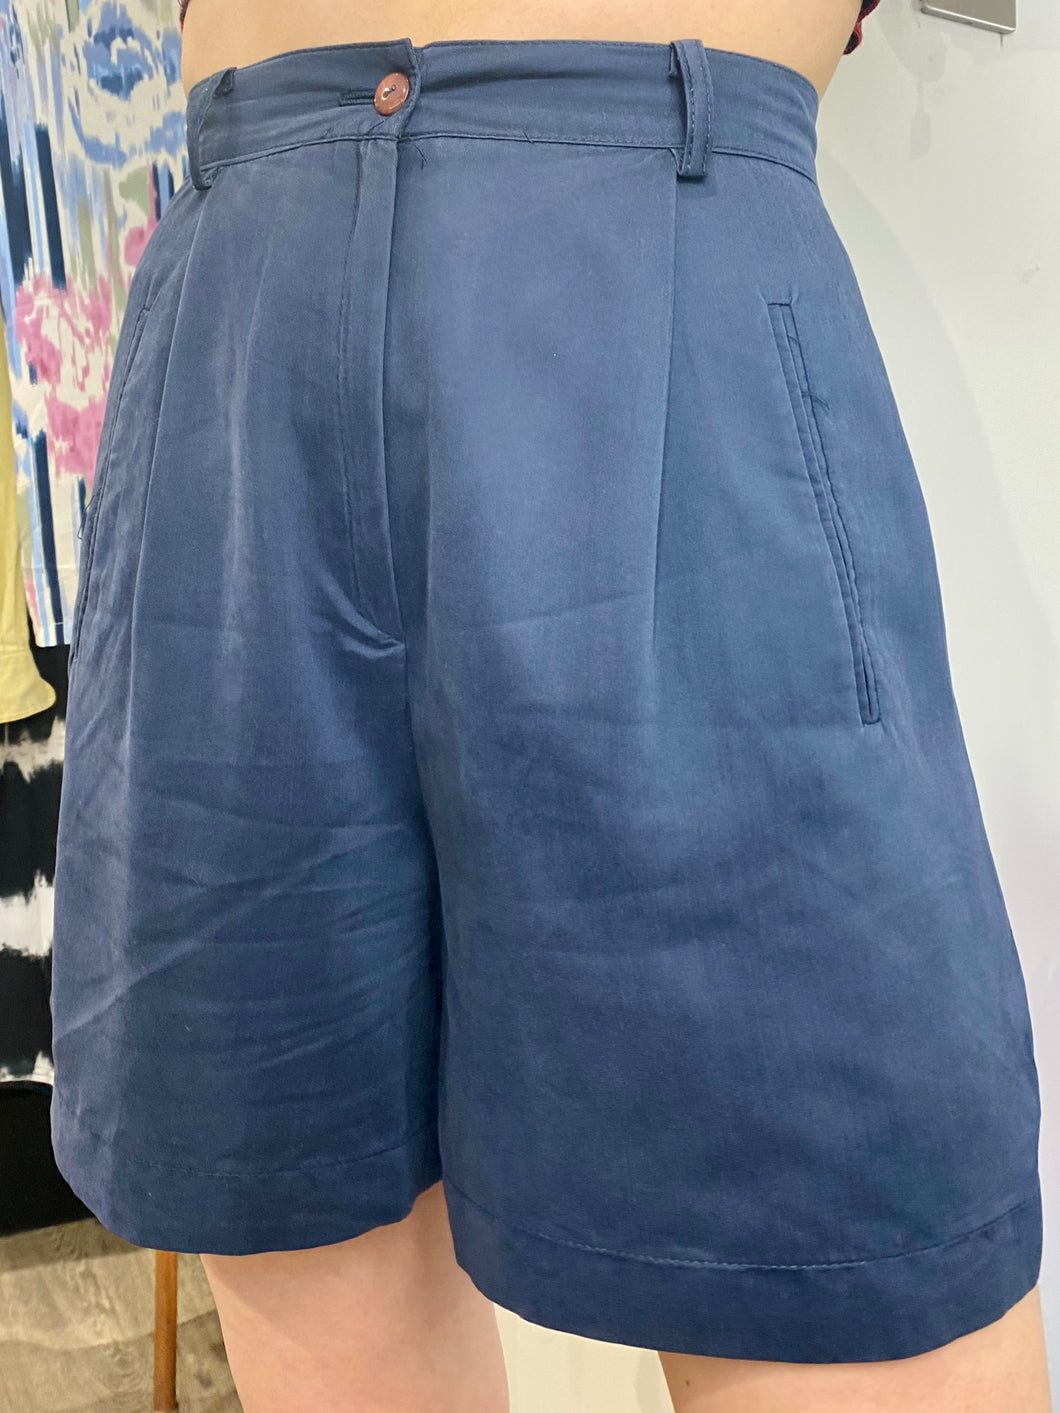 Vintage Suit Shorts in Dark Blue with Pockets in S